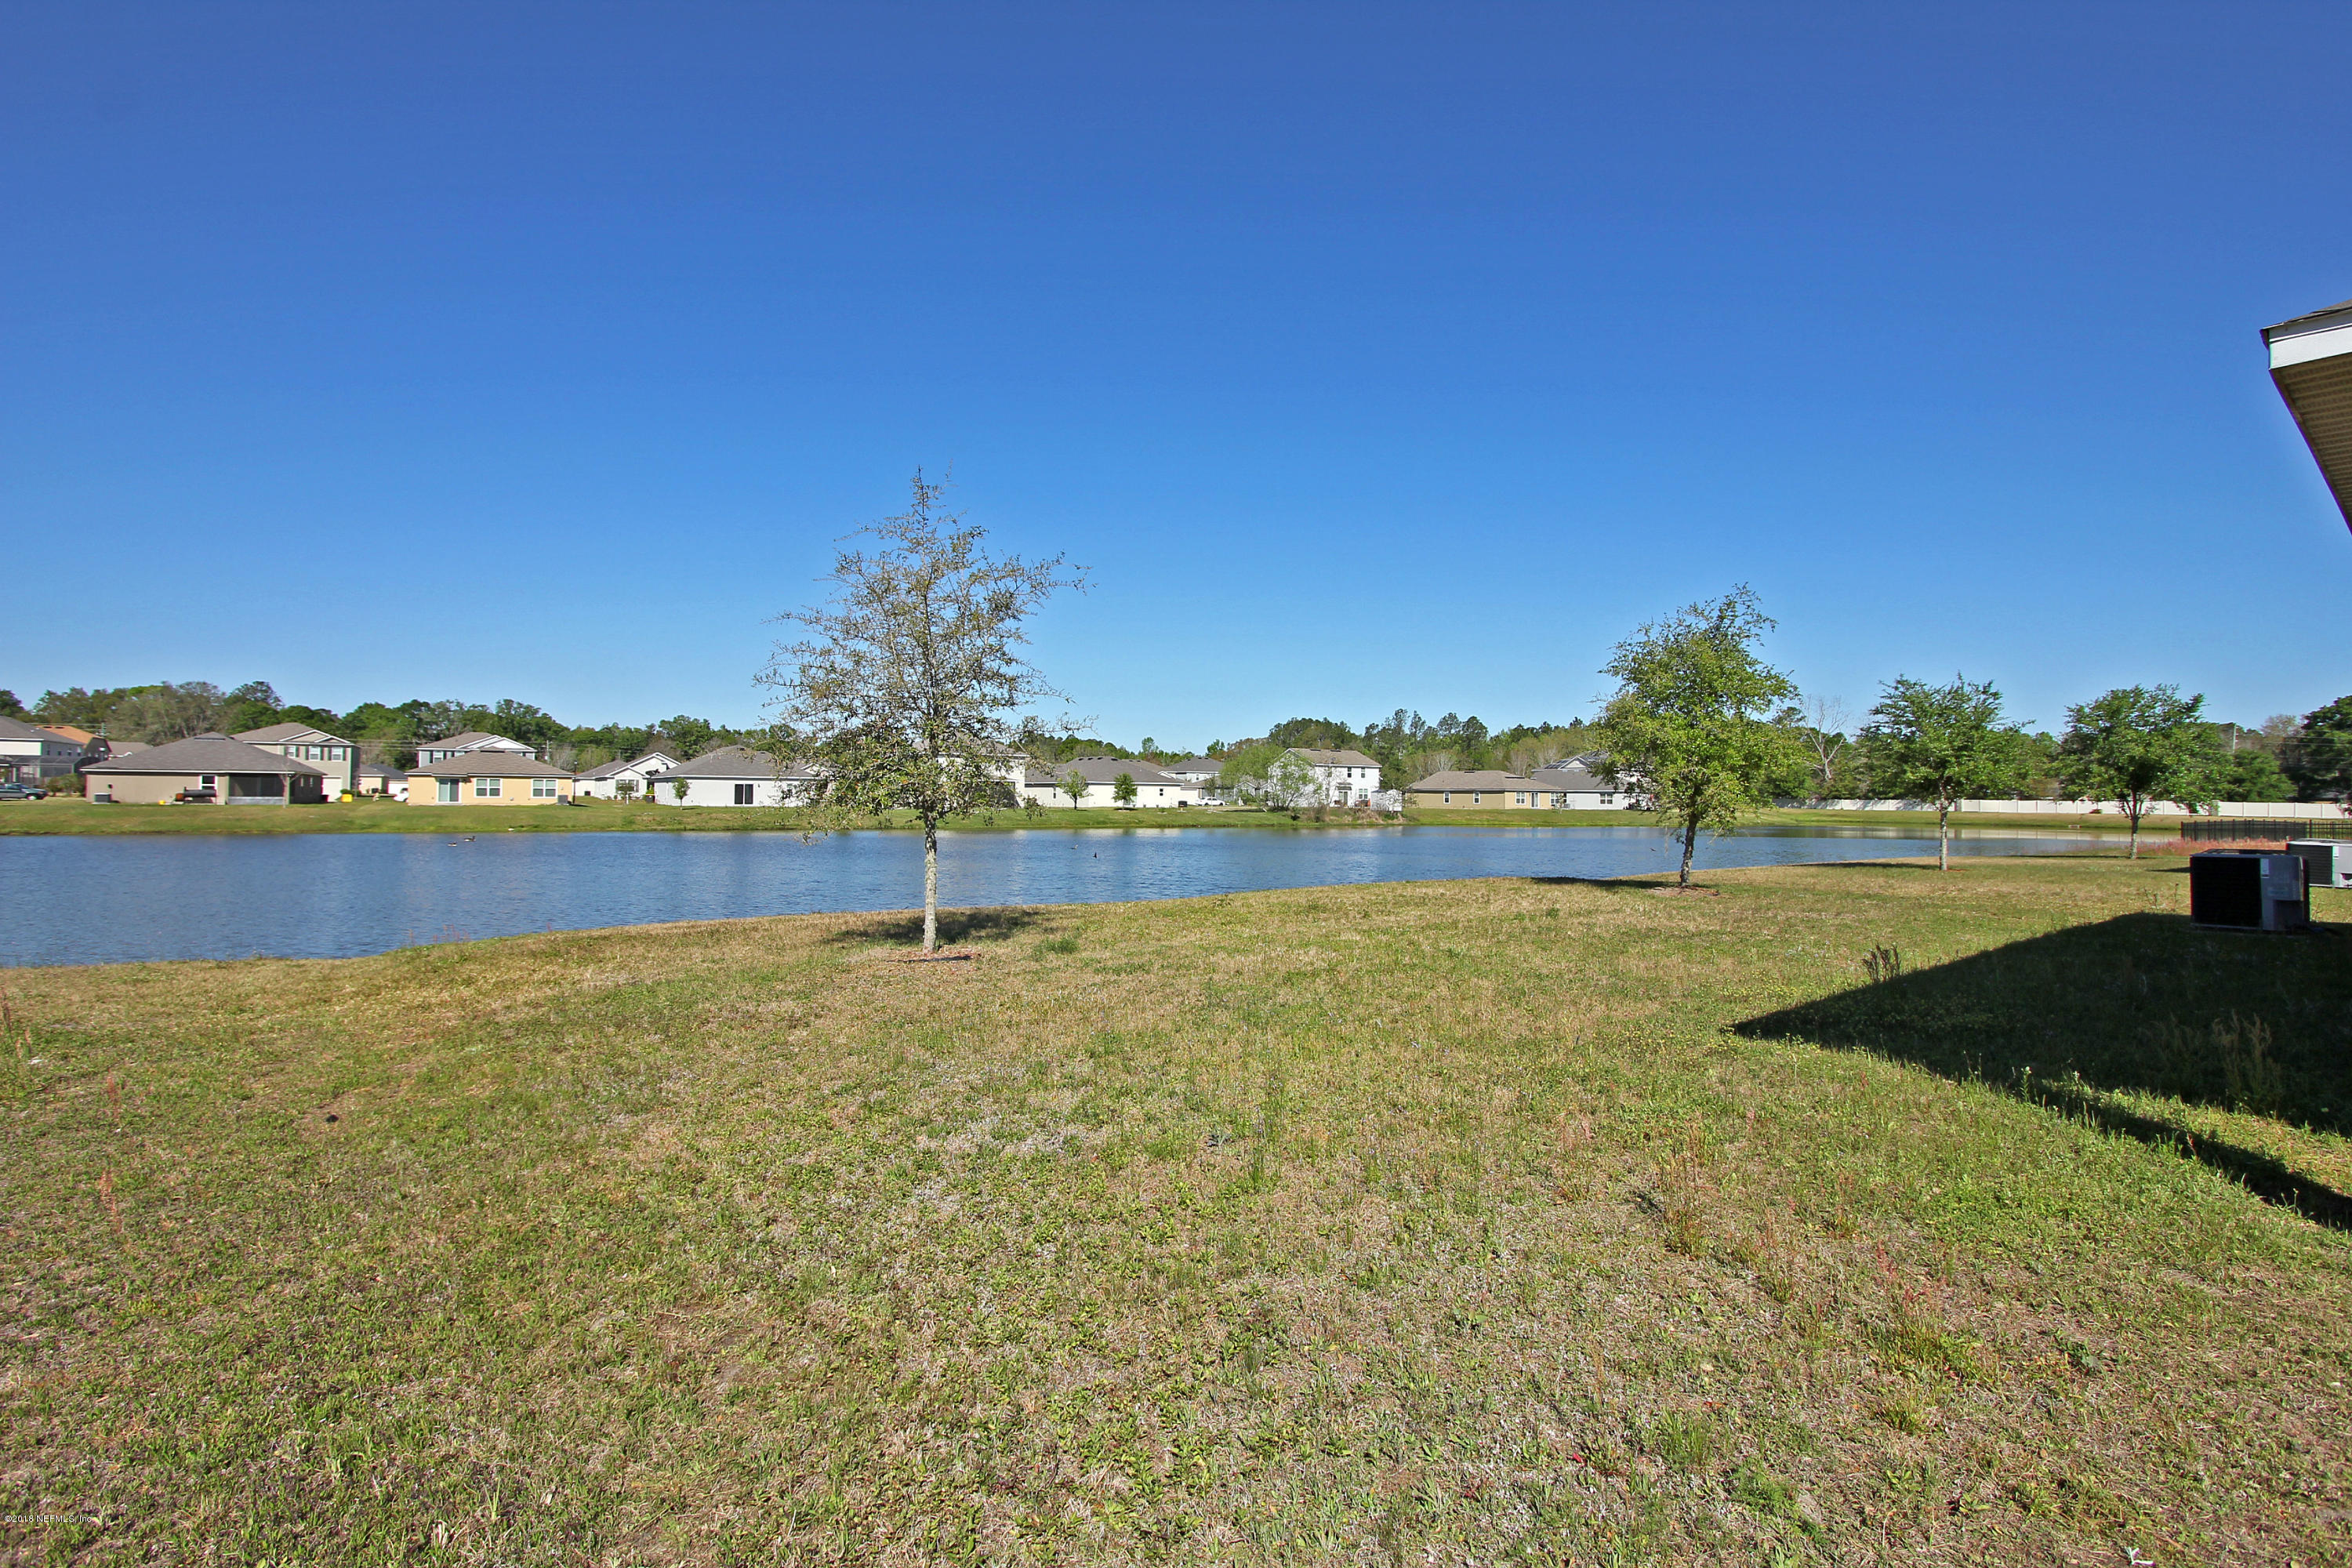 9050 LEICESTERSHIRE, JACKSONVILLE, FLORIDA 32219, 3 Bedrooms Bedrooms, ,2 BathroomsBathrooms,Residential - single family,For sale,LEICESTERSHIRE,927836